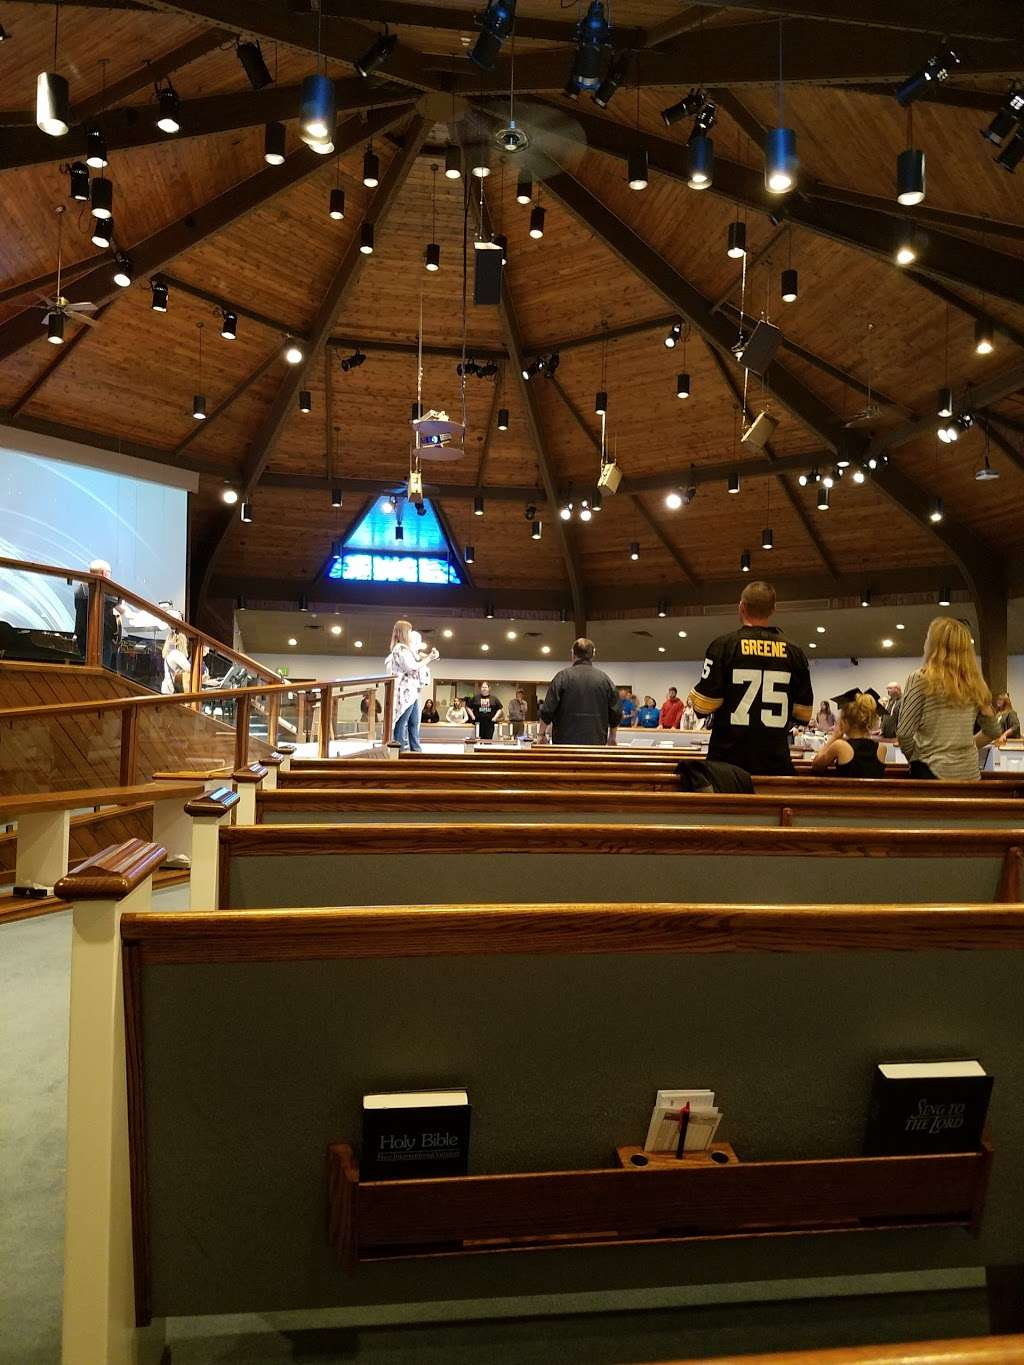 Southlake Church Of The Nazarene - church  | Photo 3 of 7 | Address: 7355 Lincoln Hwy, Crown Point, IN 46307, USA | Phone: (219) 947-2836